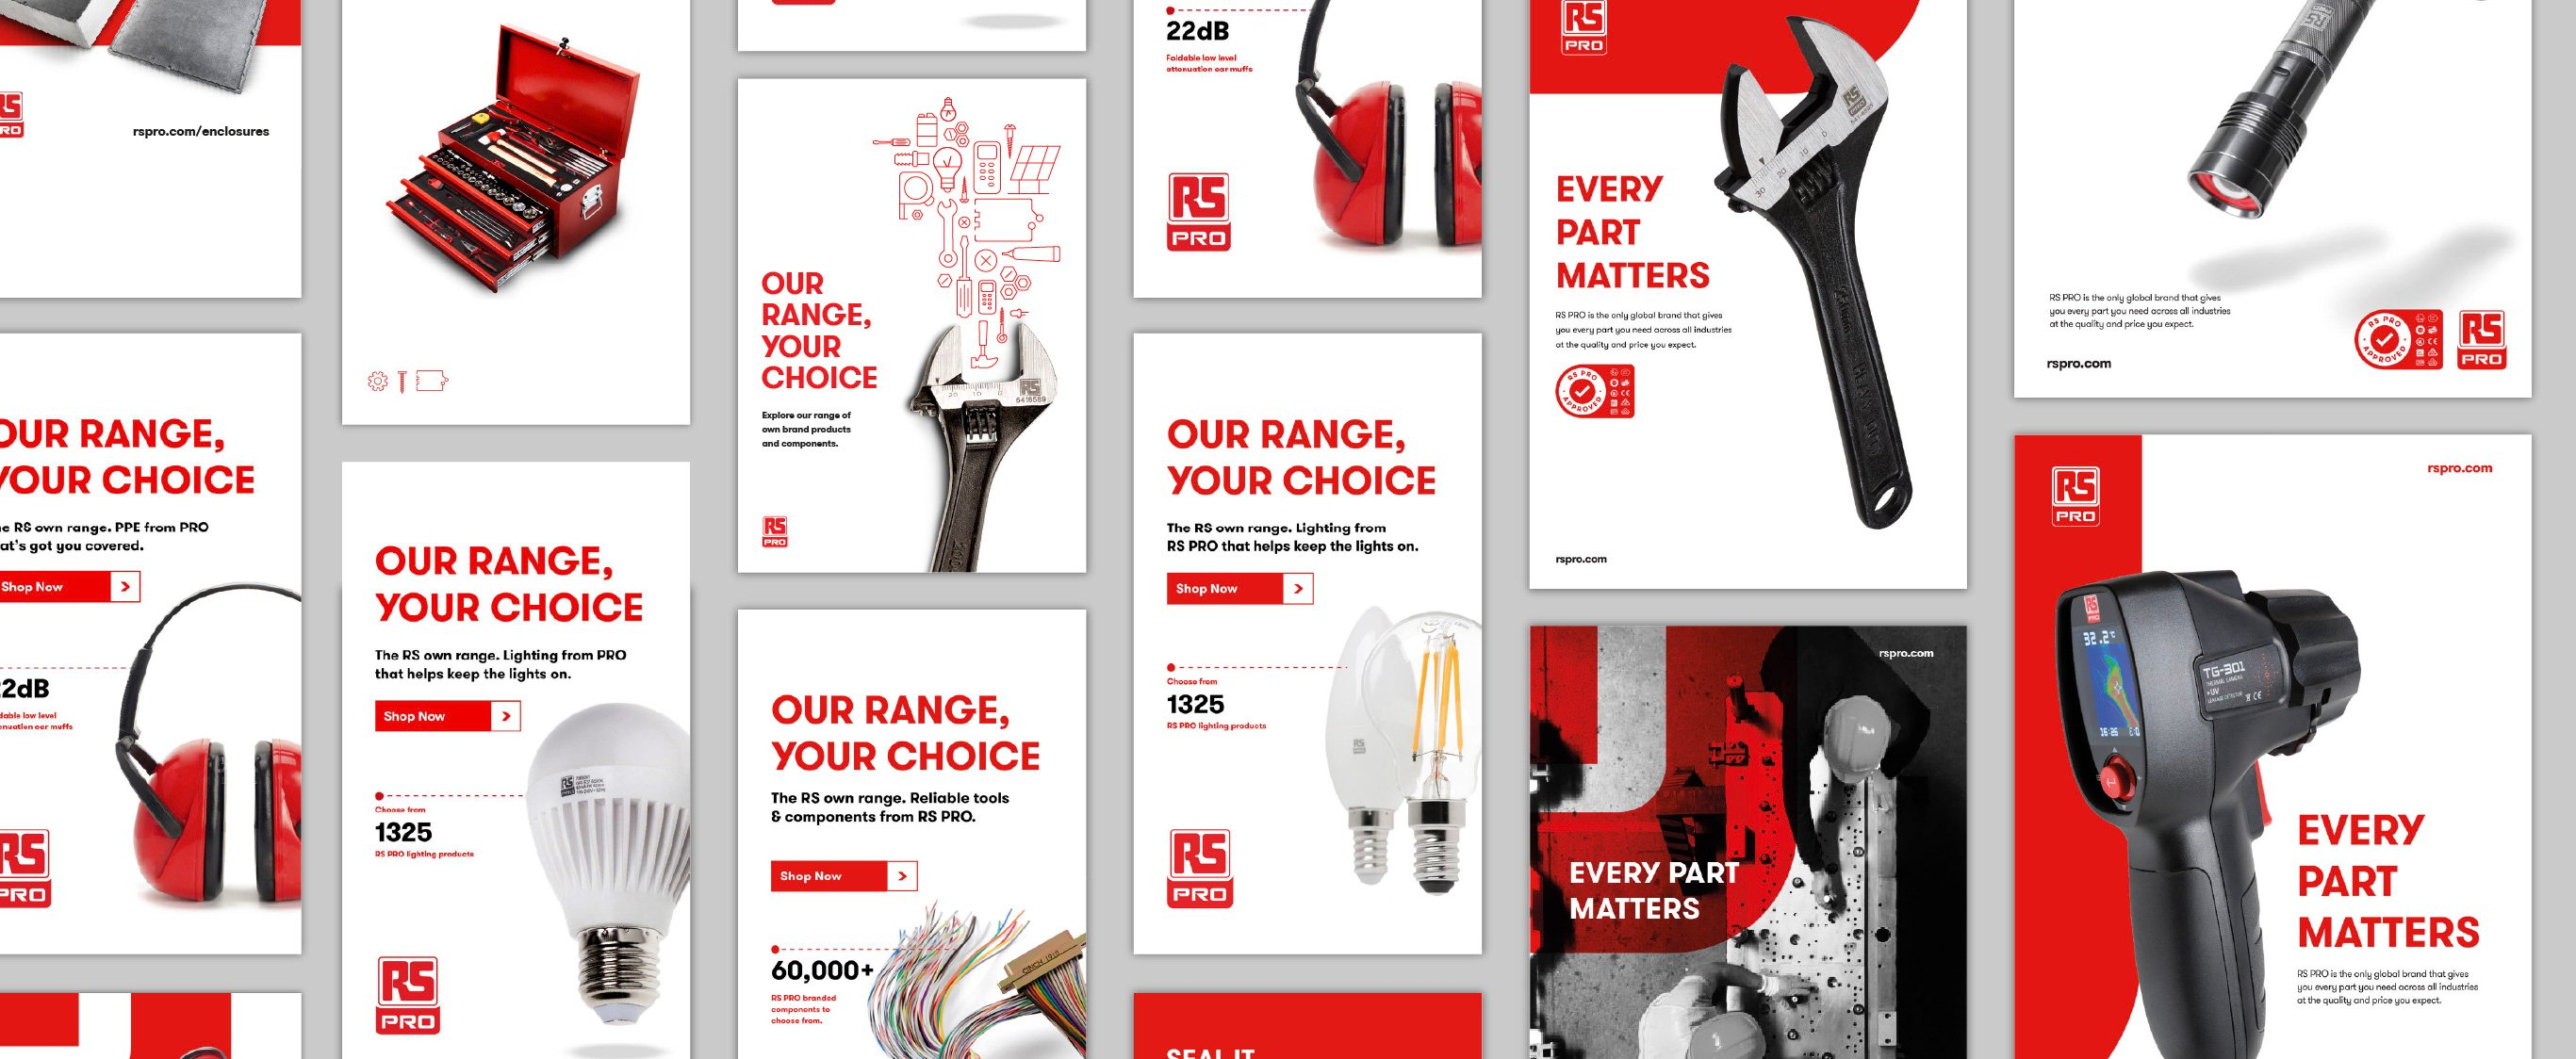 RS PRO branding applied to a huge range of marketing material